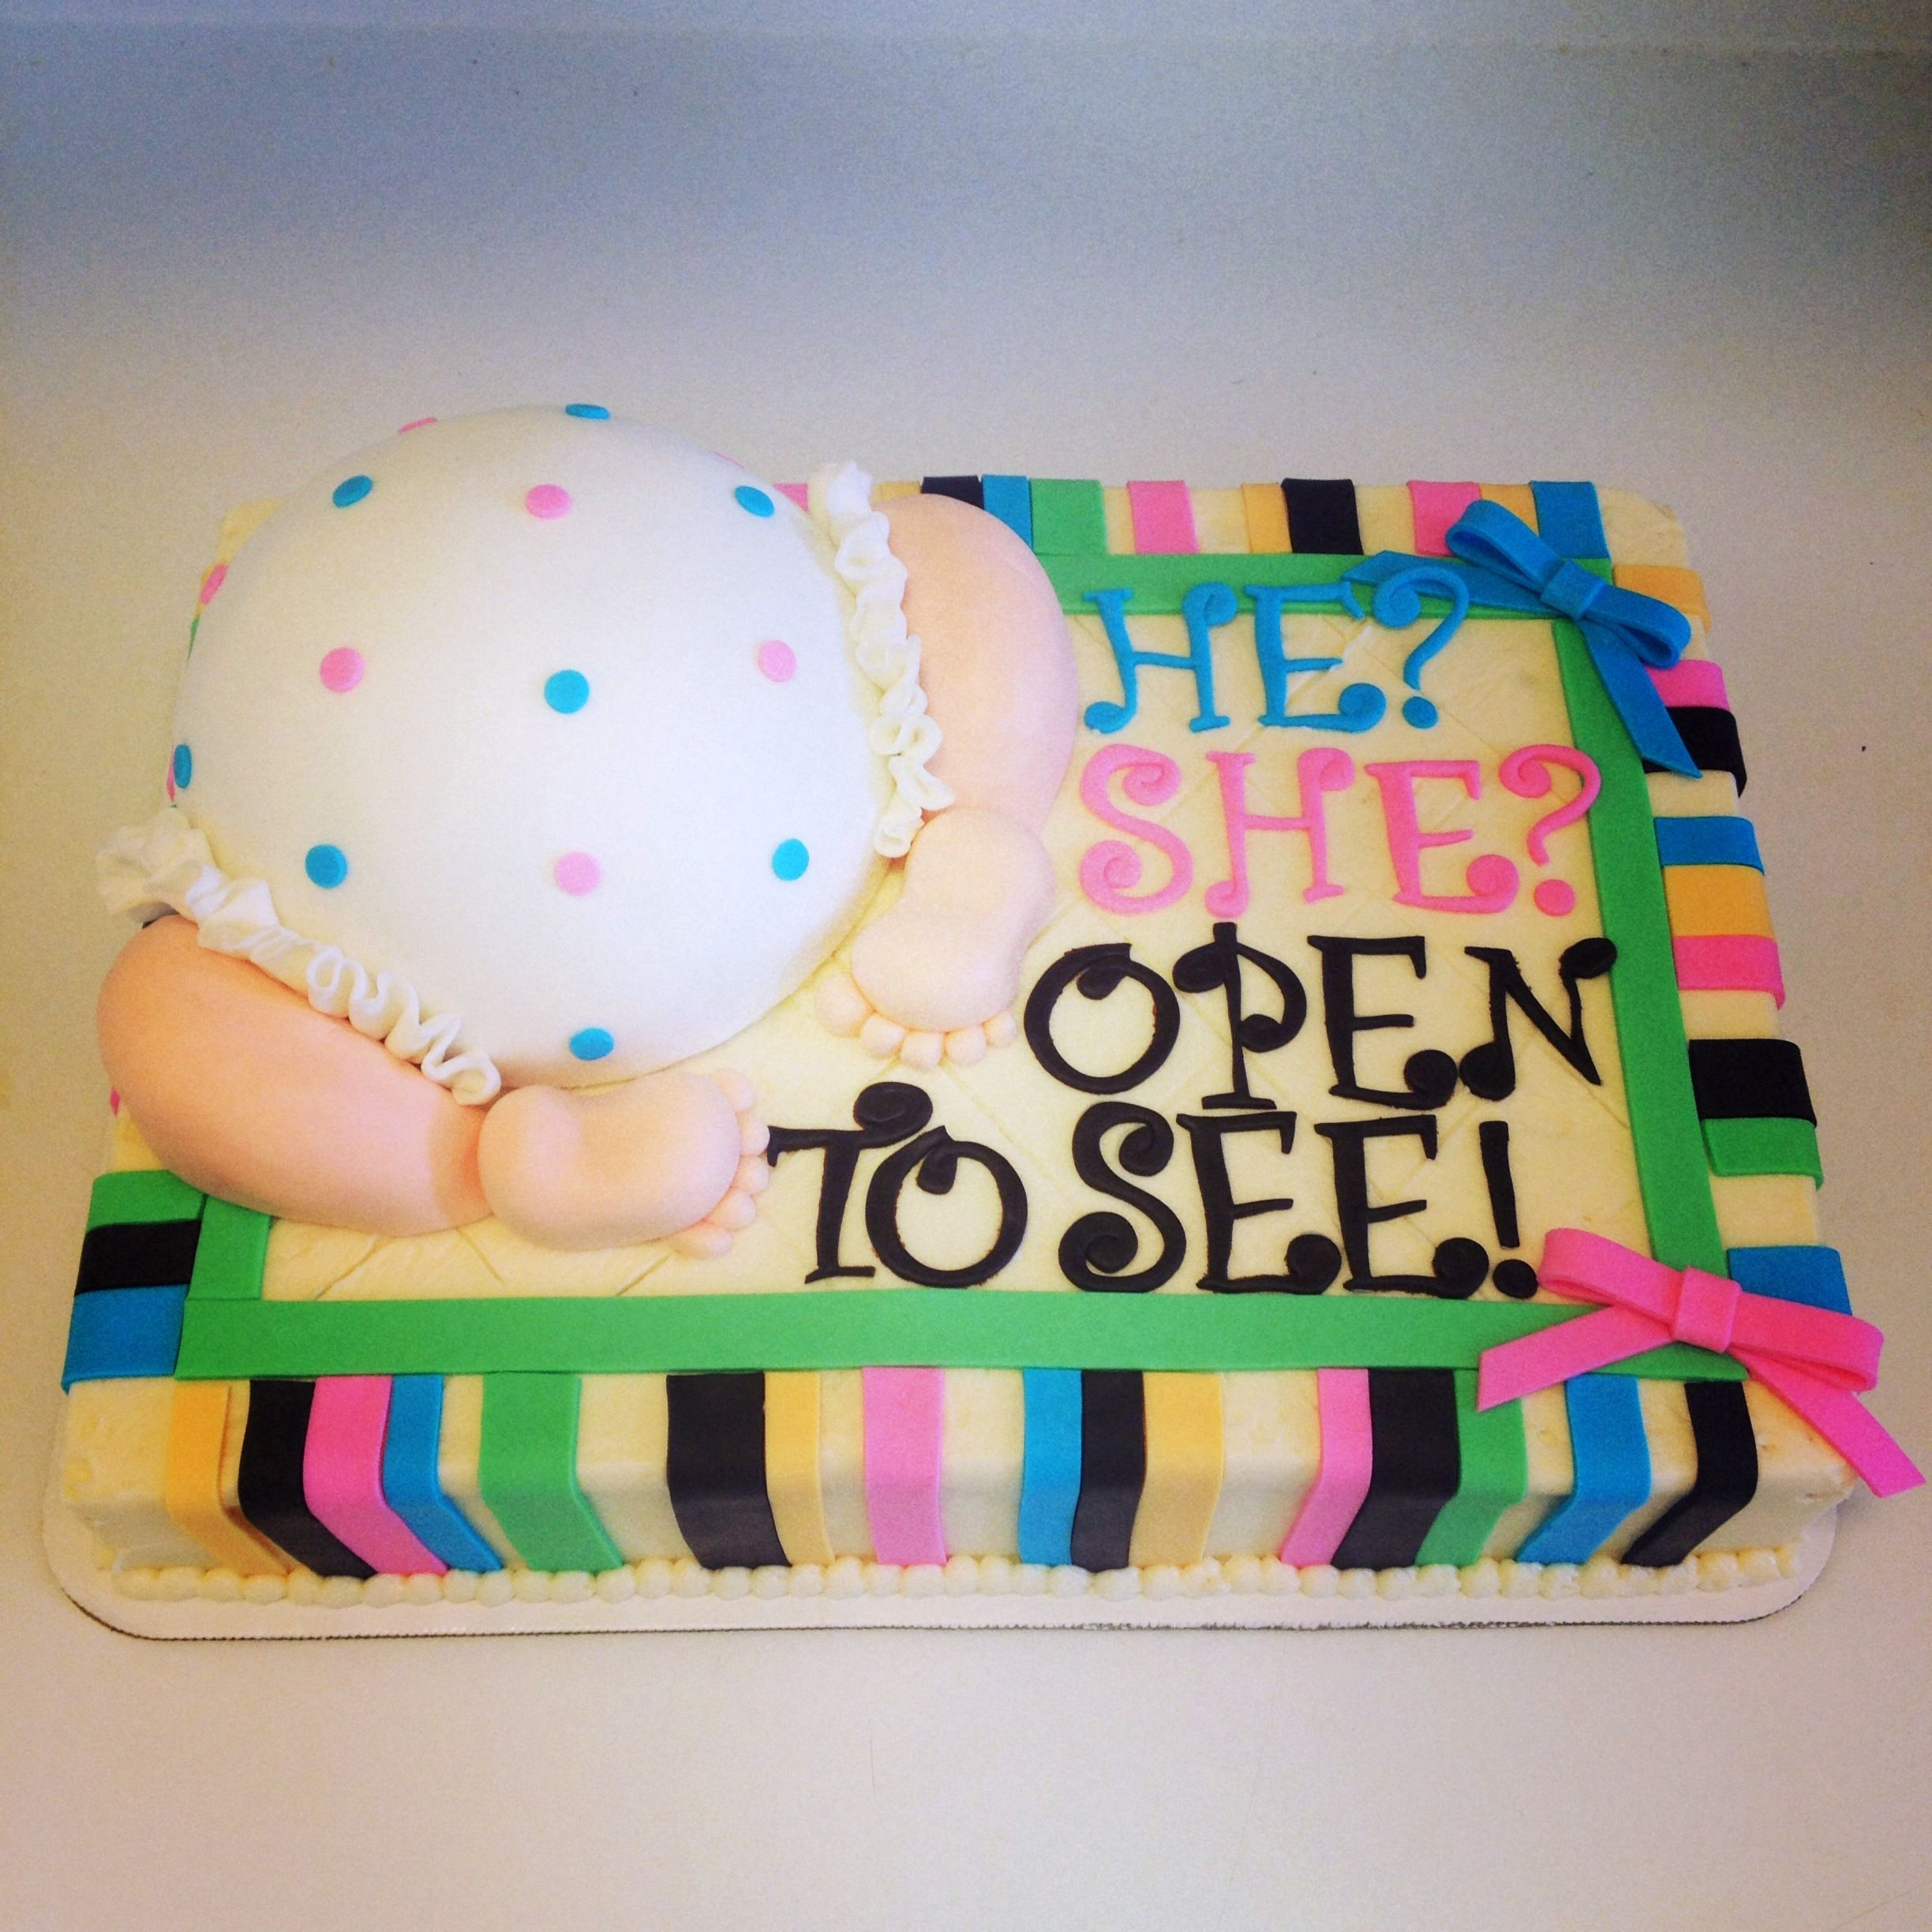 Pin By Shannon Steagall On Cute Ideas Gender Reveal Cake Gender Party Gender Reveal Party